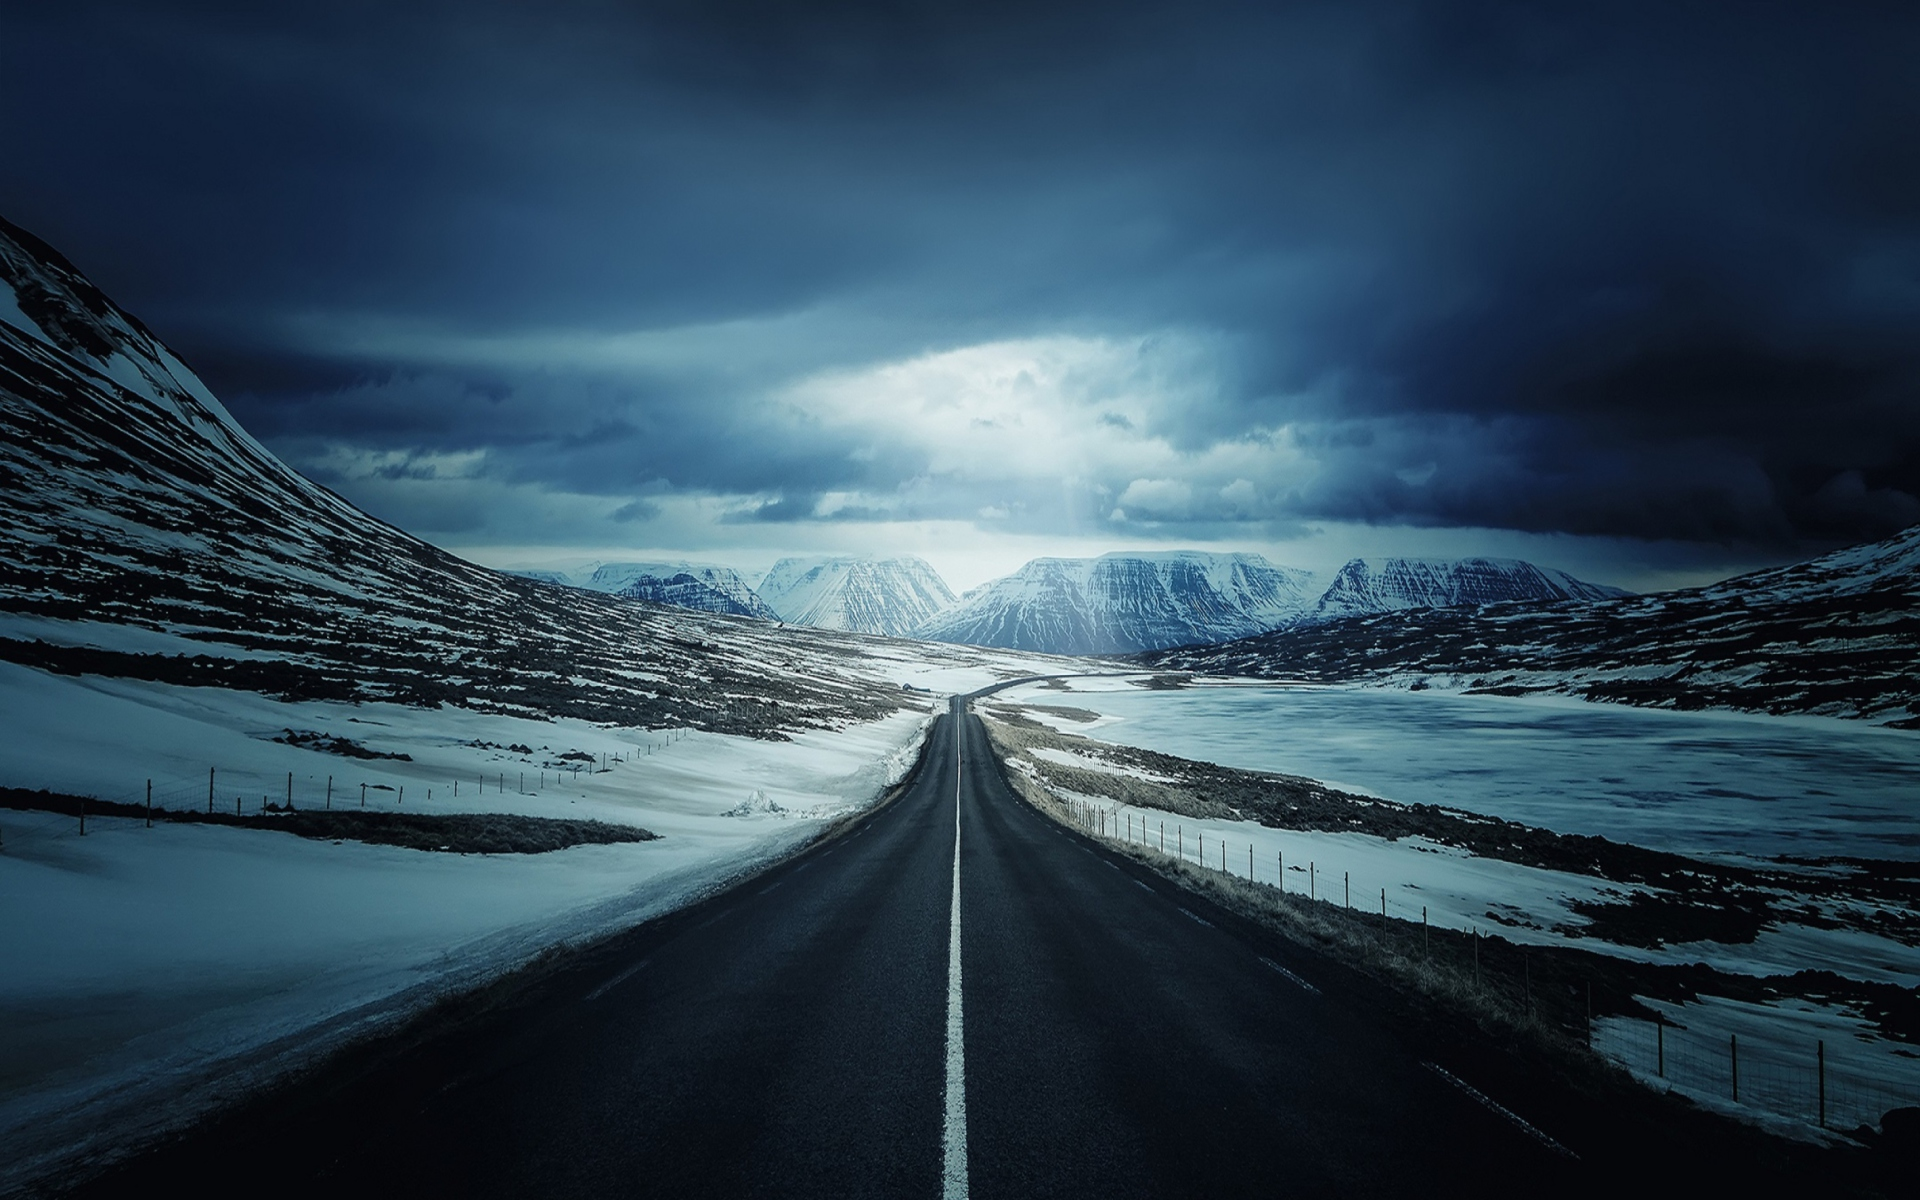 Iceland S Ring Road Wallpapers: Iceland Wallpaper For 1920x1200